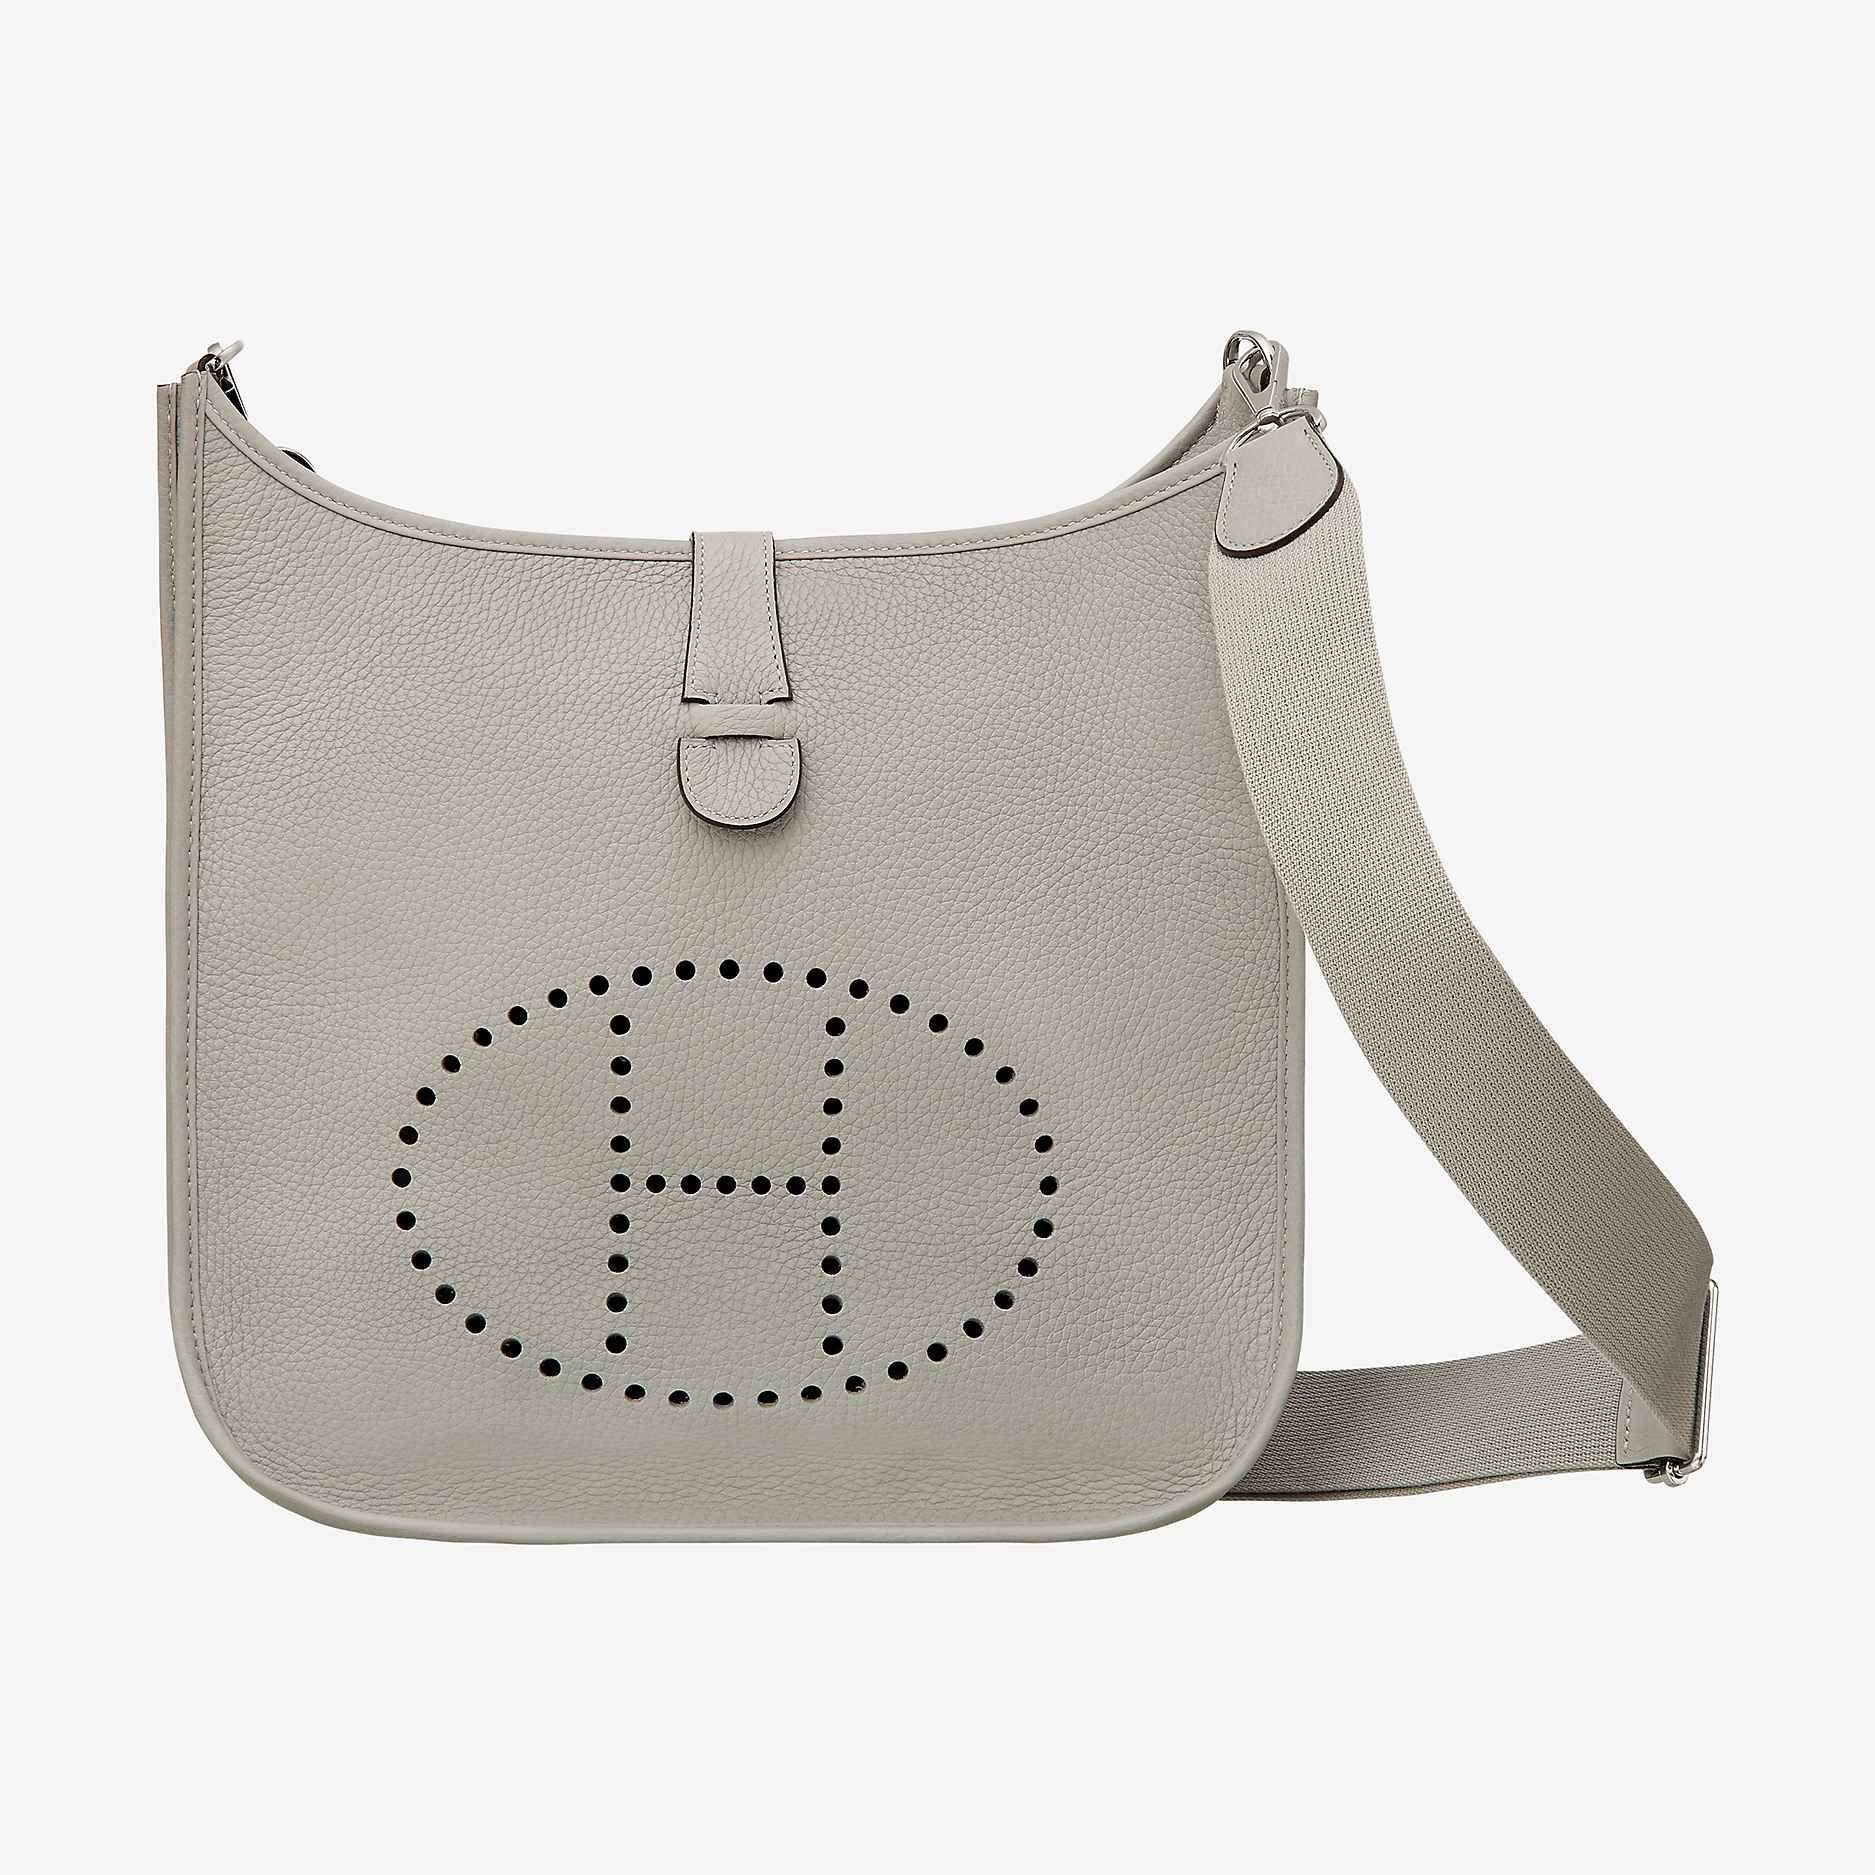 Hermes Bag In Taurillon Clemence Leather Adjule Shoulder Strap Outside Pocket Tabclosure Perforated Plaque